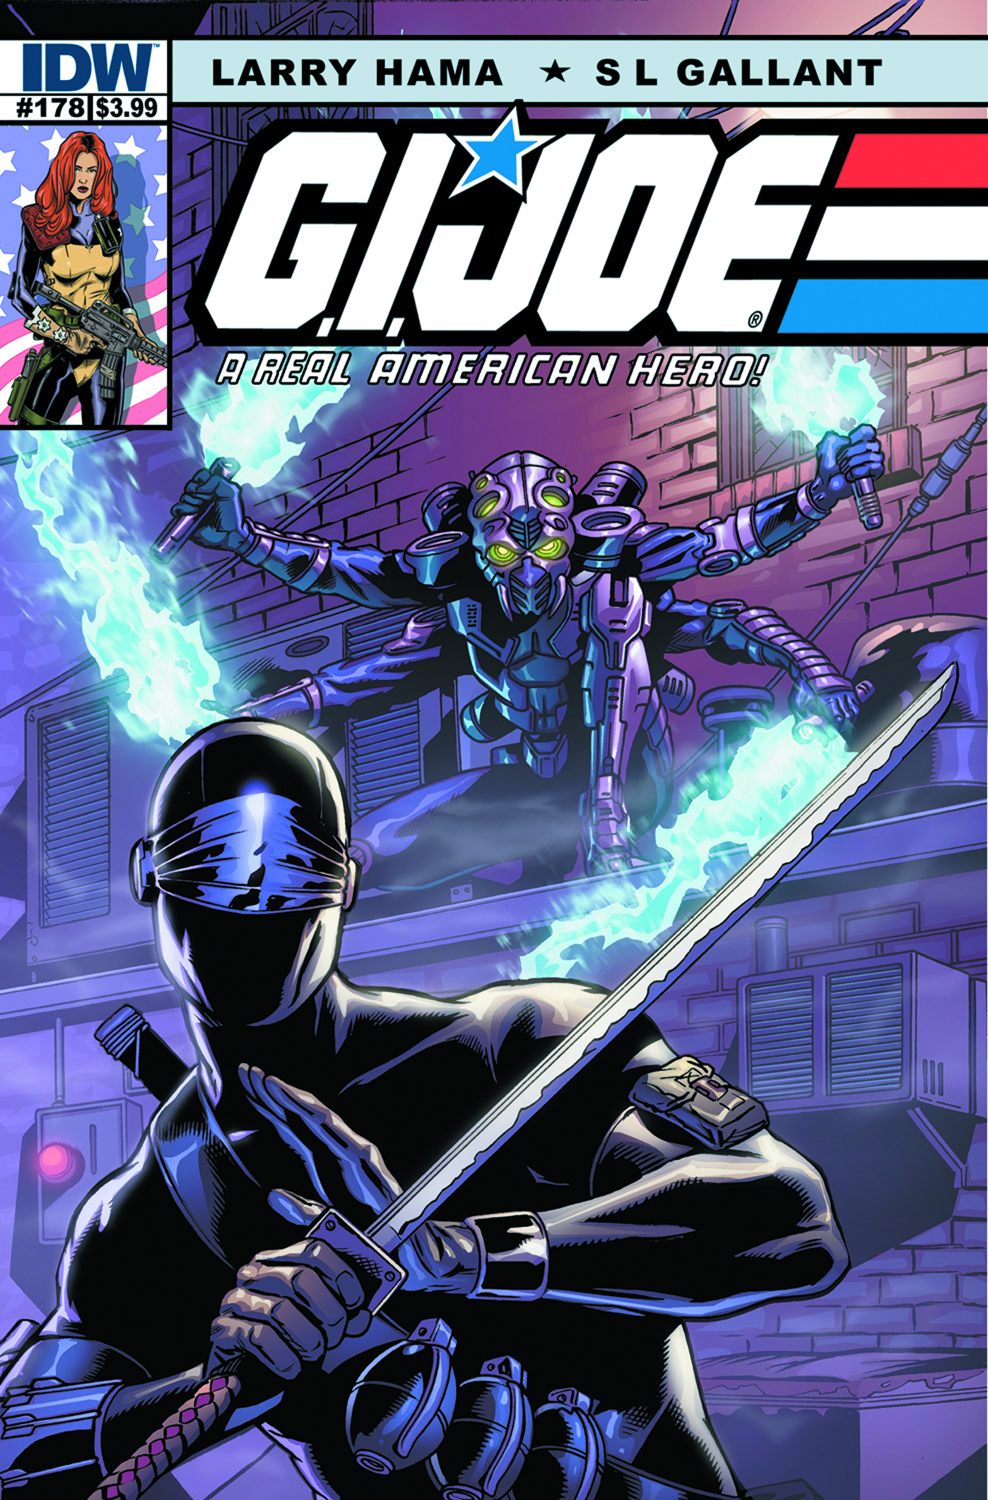 GI JOE A REAL AMERICAN HERO #178